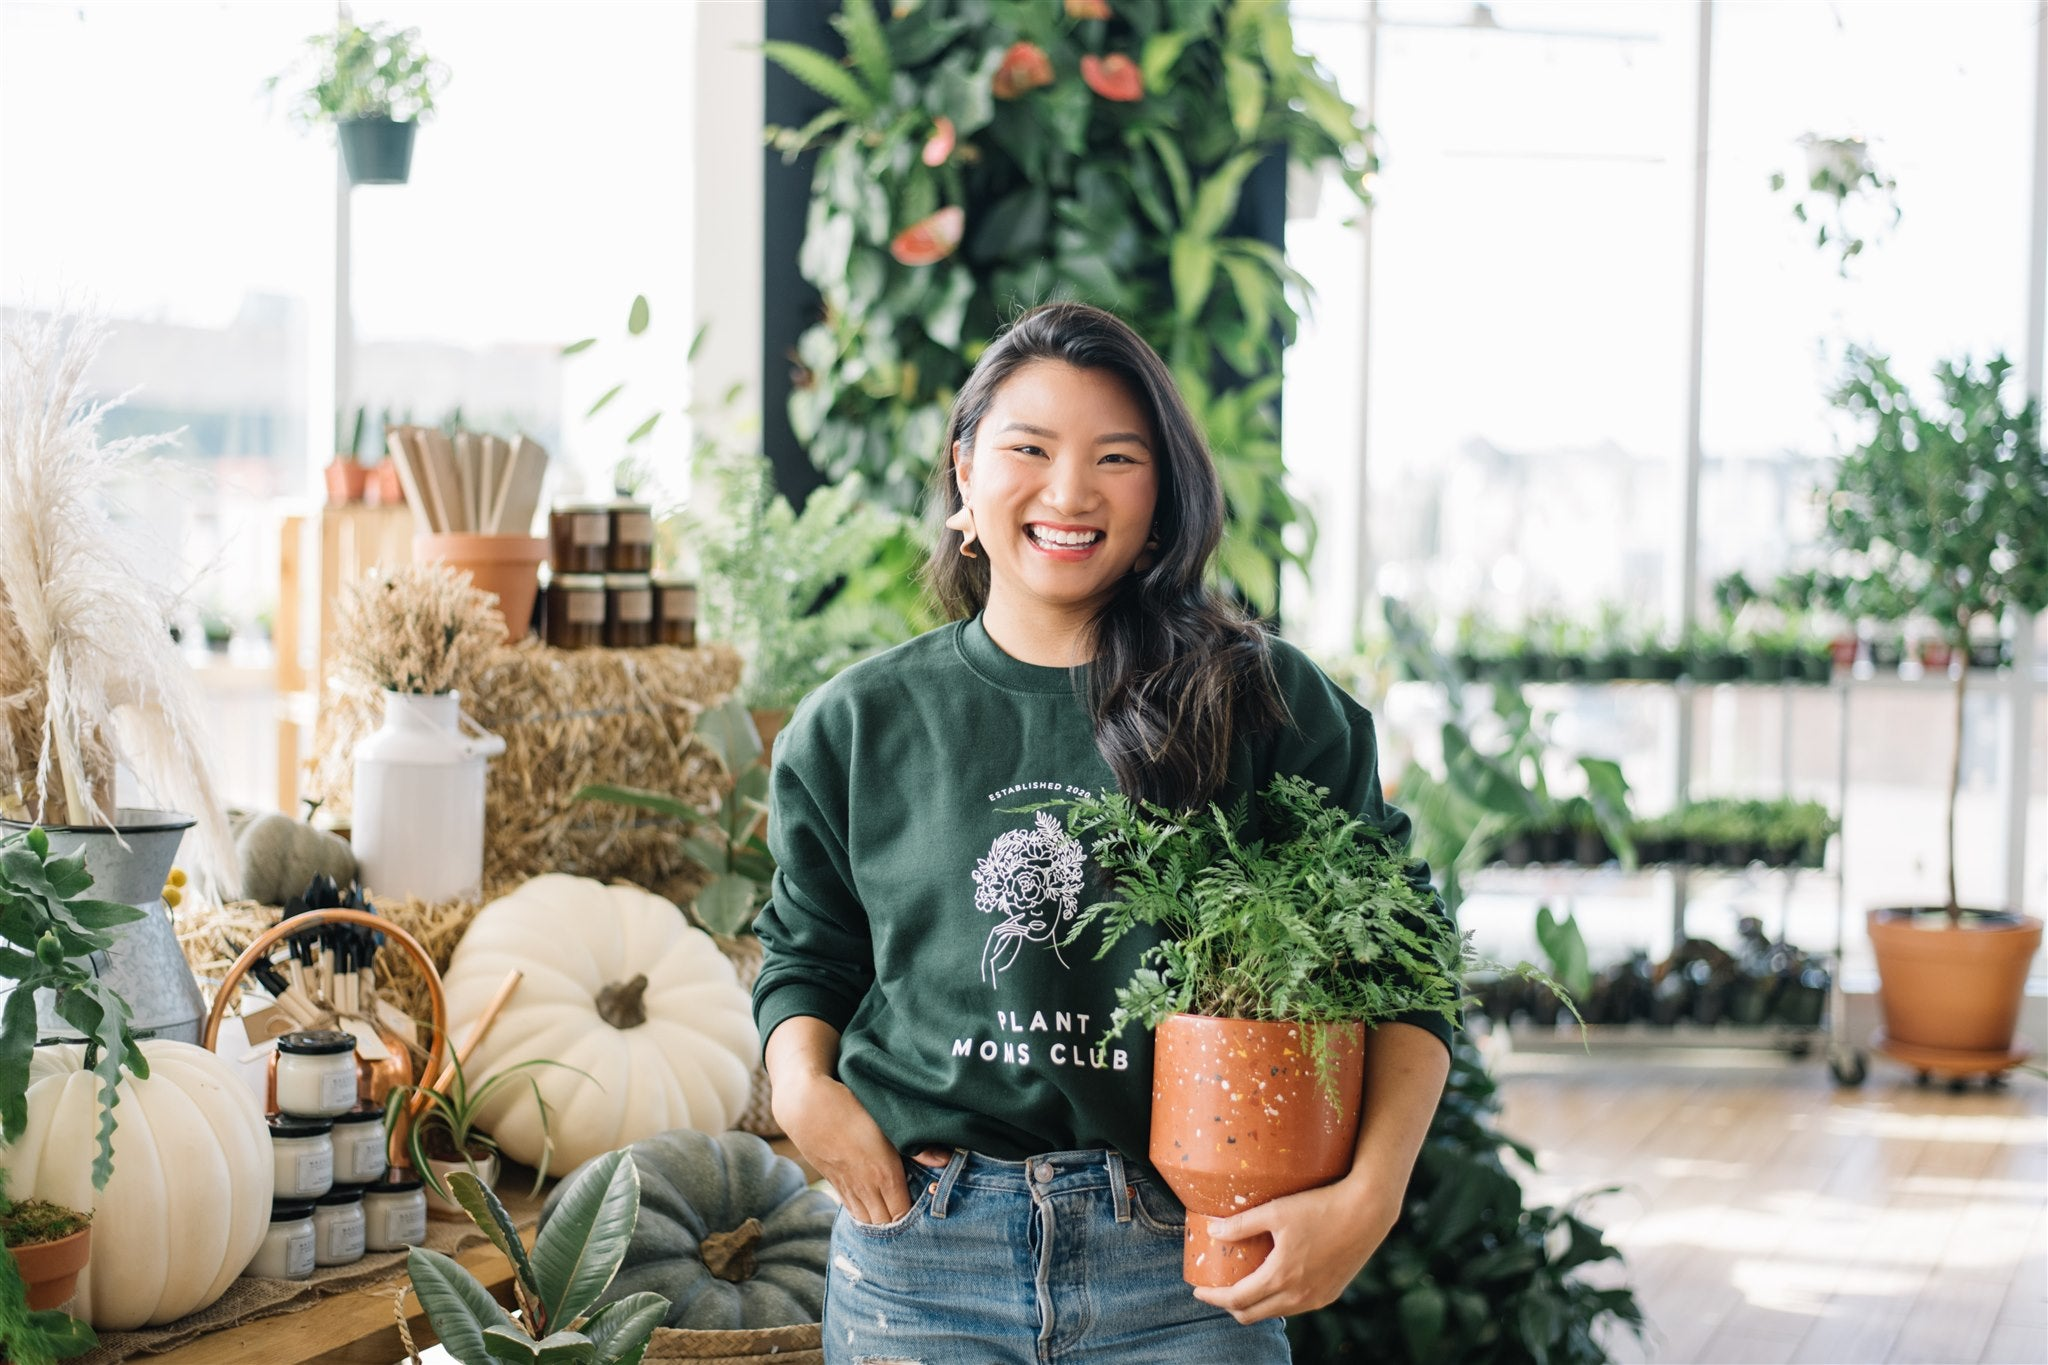 Woman wearing a plant moms club green crewneck sweater with terrazzo planter and a plant shop